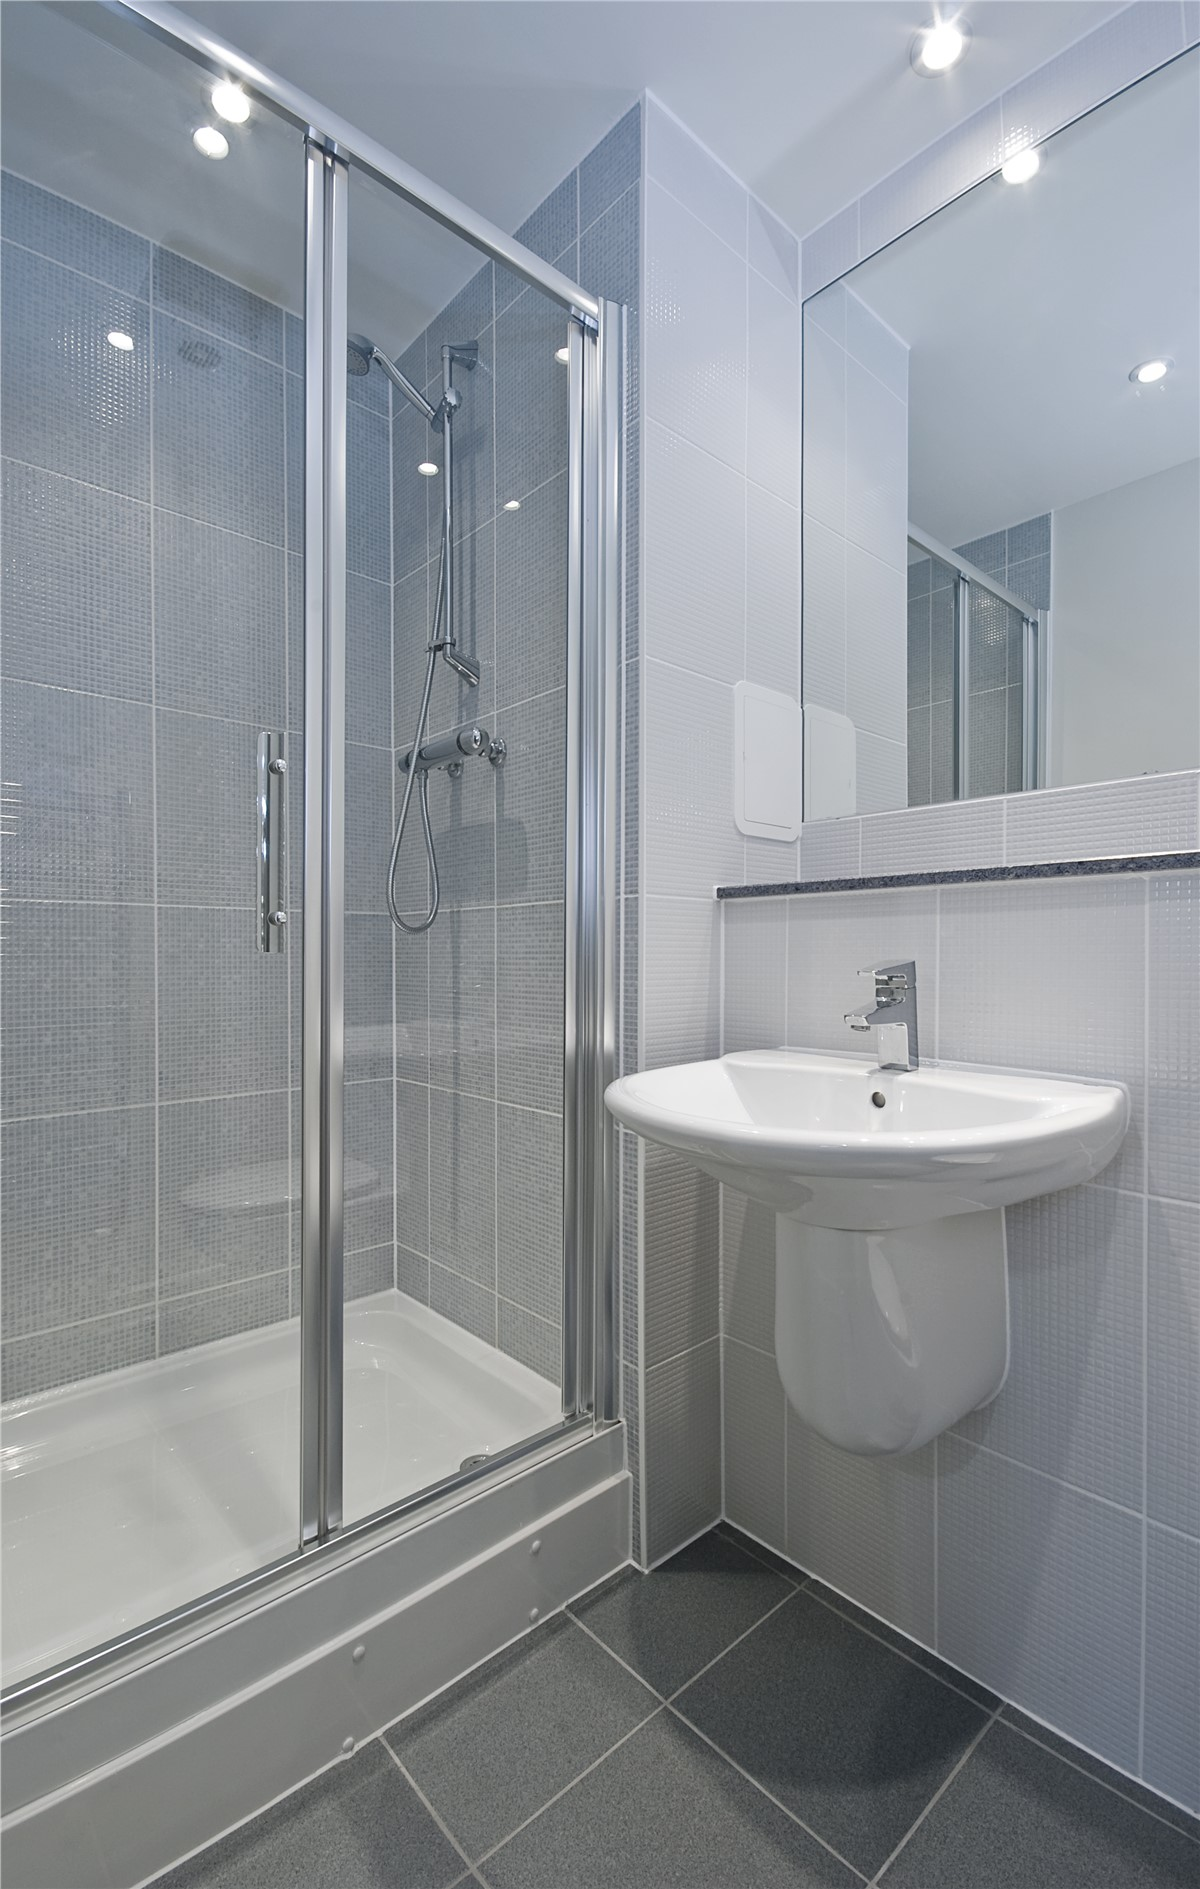 Walk-in Showers | Step in Shower | Easy Access Showers | Toledo ...